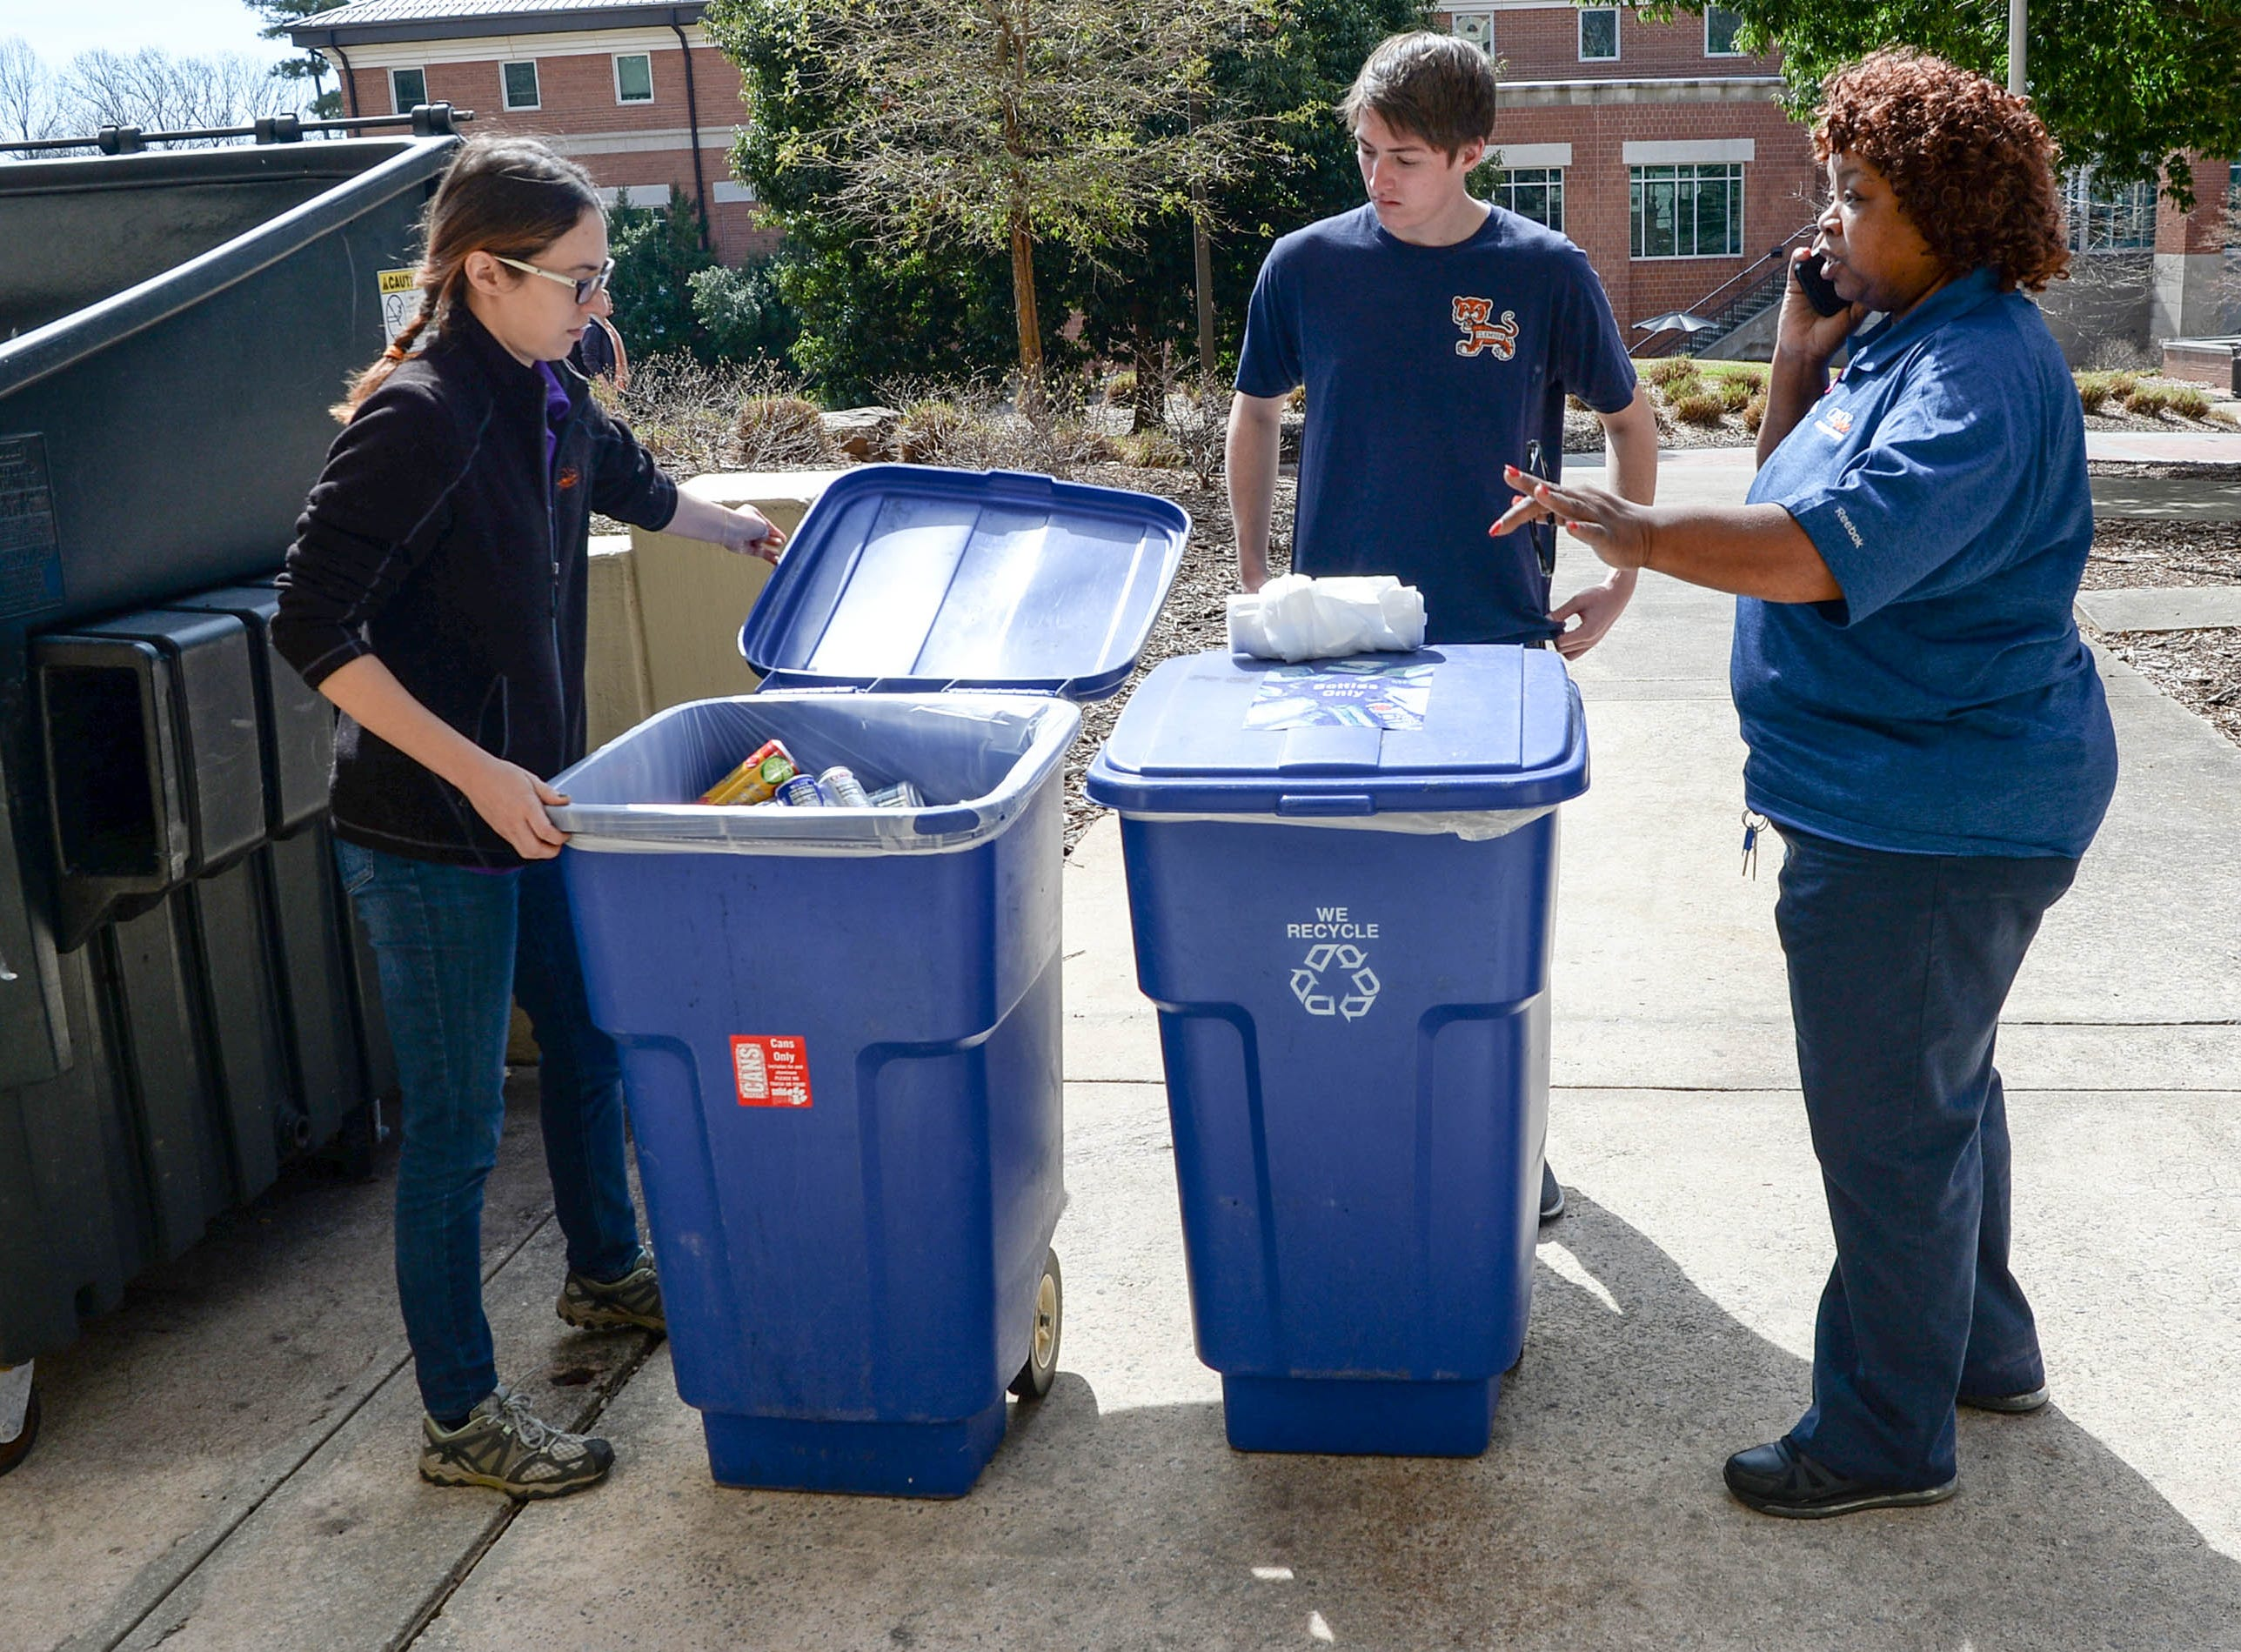 Clemson University recycle coordinator Brittany Morra, left, and Caleb Todd, middle, communicate with a school dormitory facilities supervisor Shirley Kemp, right, as they get ready to study recycled and unsorted trash bags, part of a study of student recycle habits in March. The waste audit, part of the annual RecycleMania competition with Universities across the country found from a sample study that Clemson students who recycle plastic and cans are good at doing so, said Morra, leading the study on the lawn outside Manning and Byrnes Hall tower dormitories.